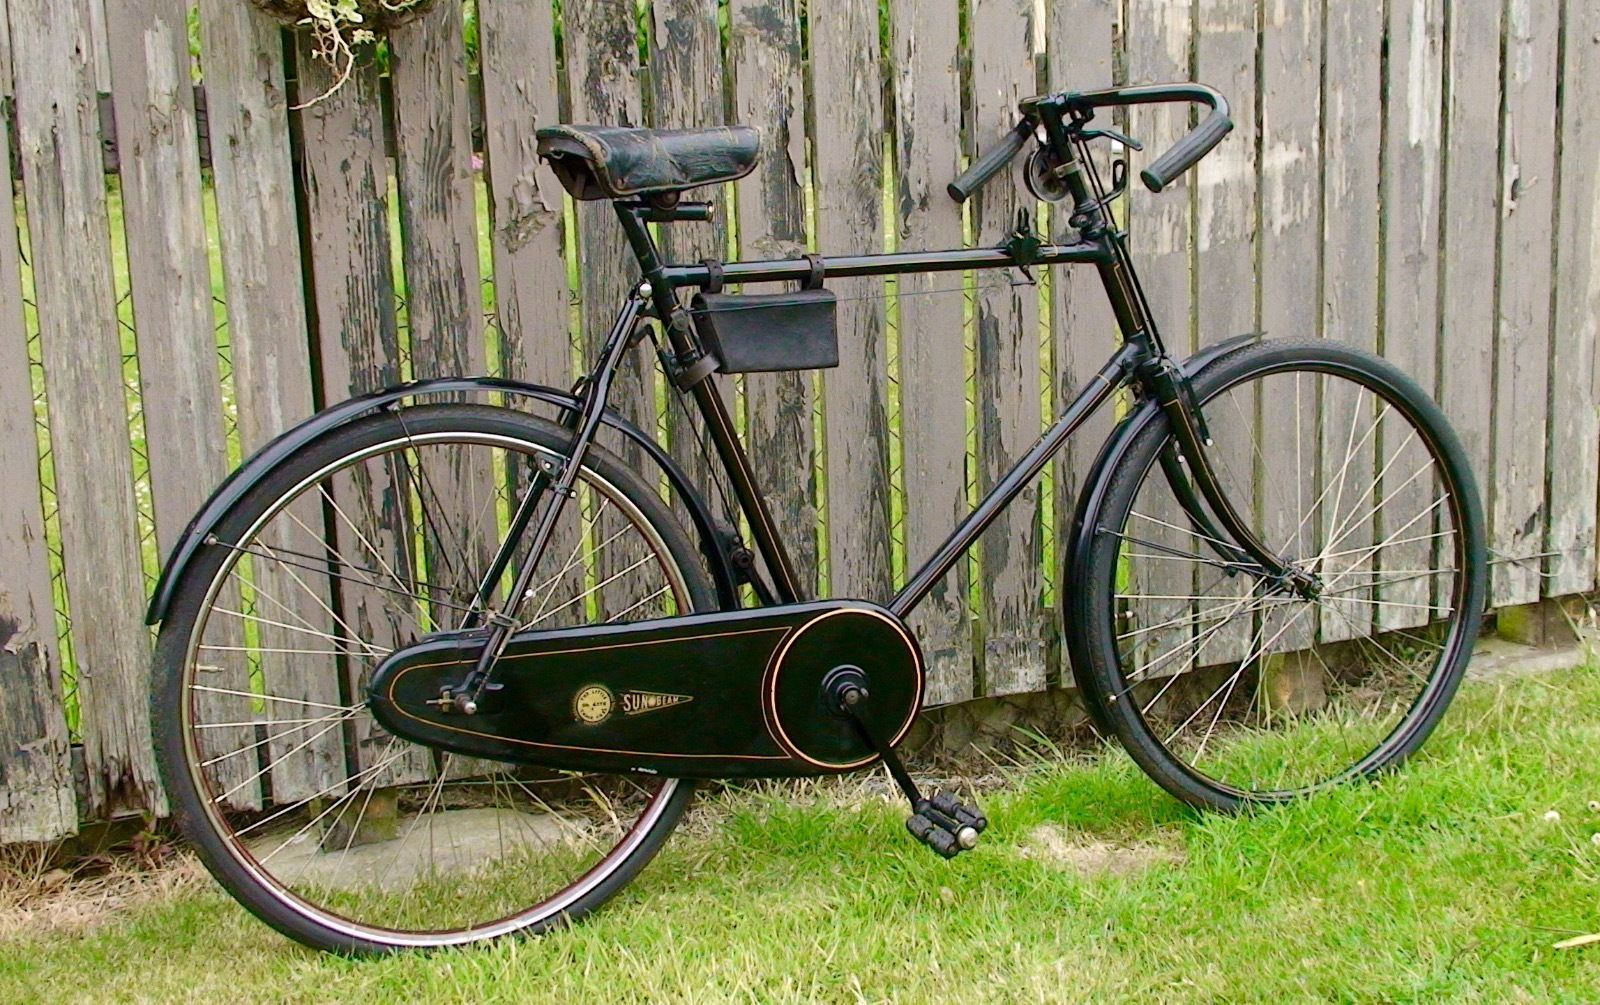 Vintage Special Sunbeam Light Roadster Bicycle Circa 1929 Bicycle Antique Bicycles Old Bicycle